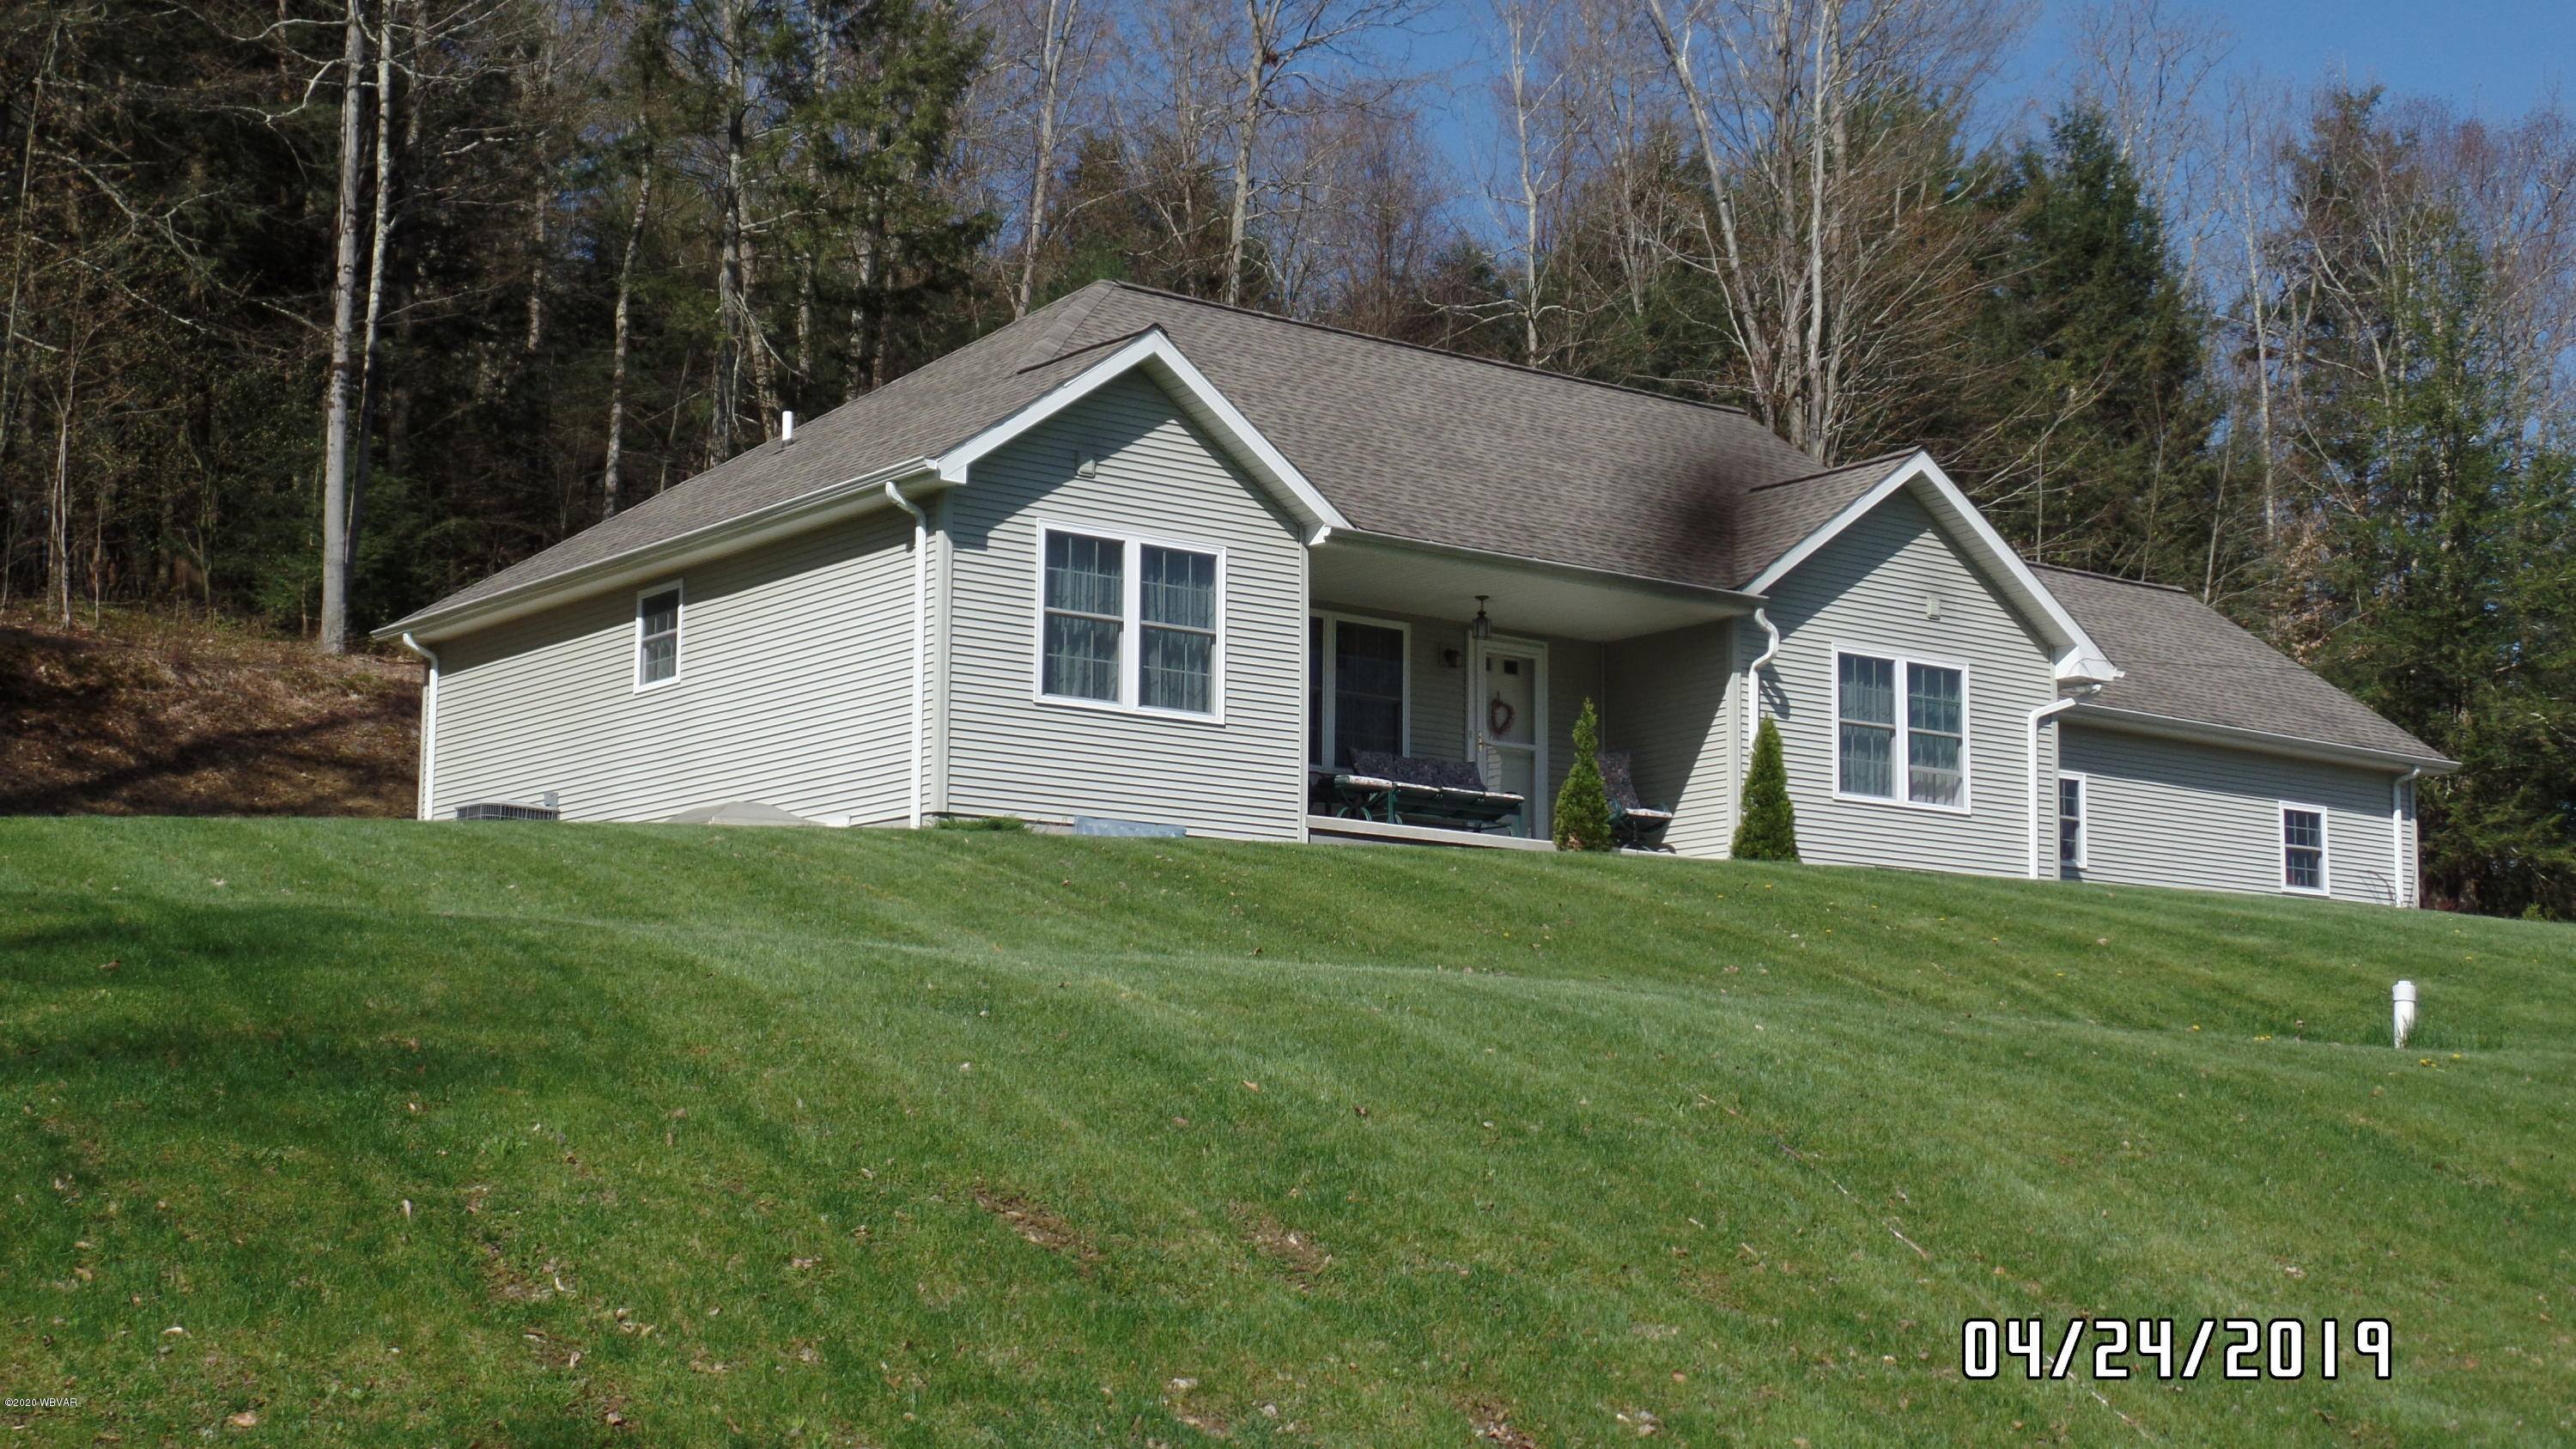 529 MILL HILL ROAD,Cogan Station,PA 17728,4 Bedrooms Bedrooms,2.75 BathroomsBathrooms,Residential,MILL HILL,WB-89385